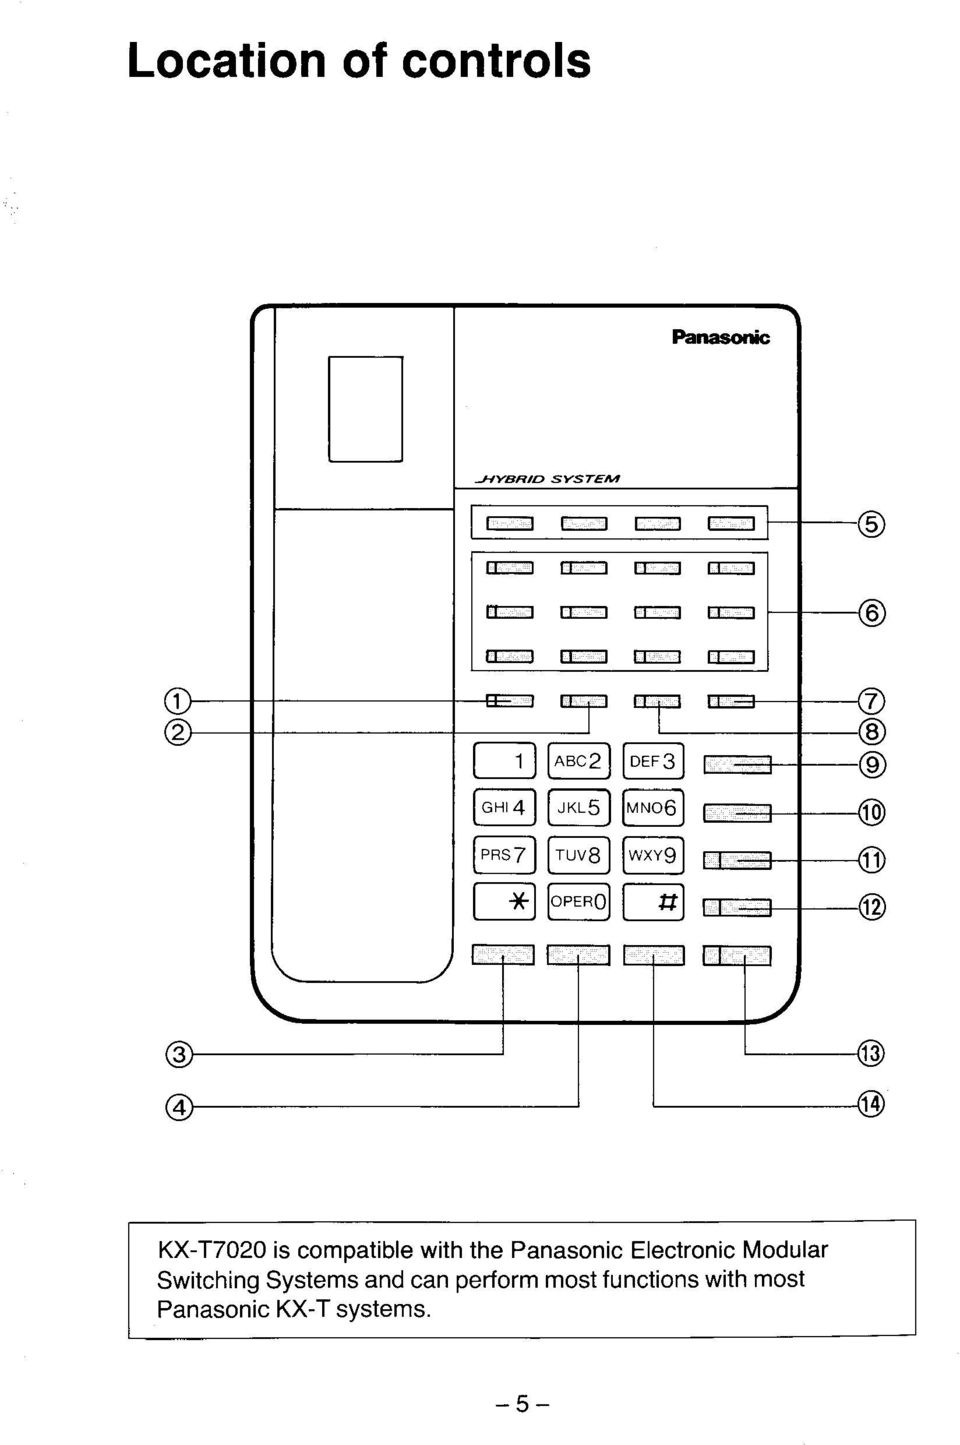 Electronic Modular Switching Systems and can